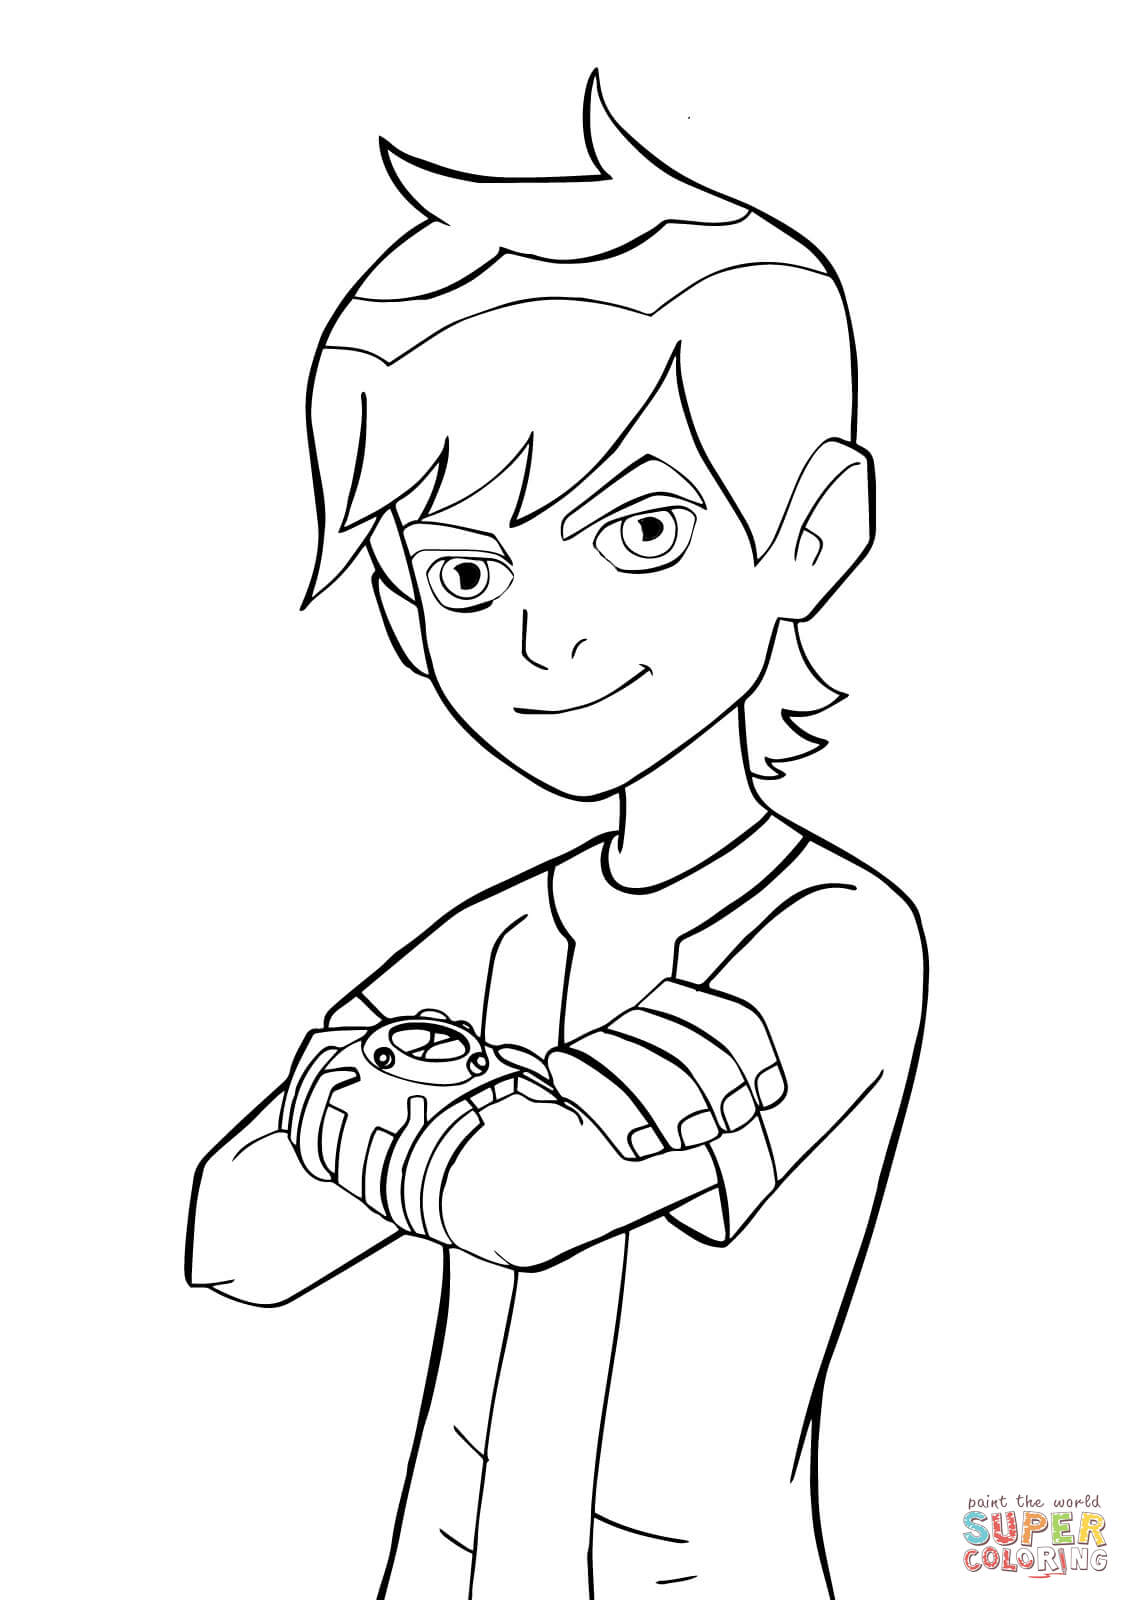 ben 10 for coloring ben 10 coloring pages coloring pages to download and print for 10 coloring ben